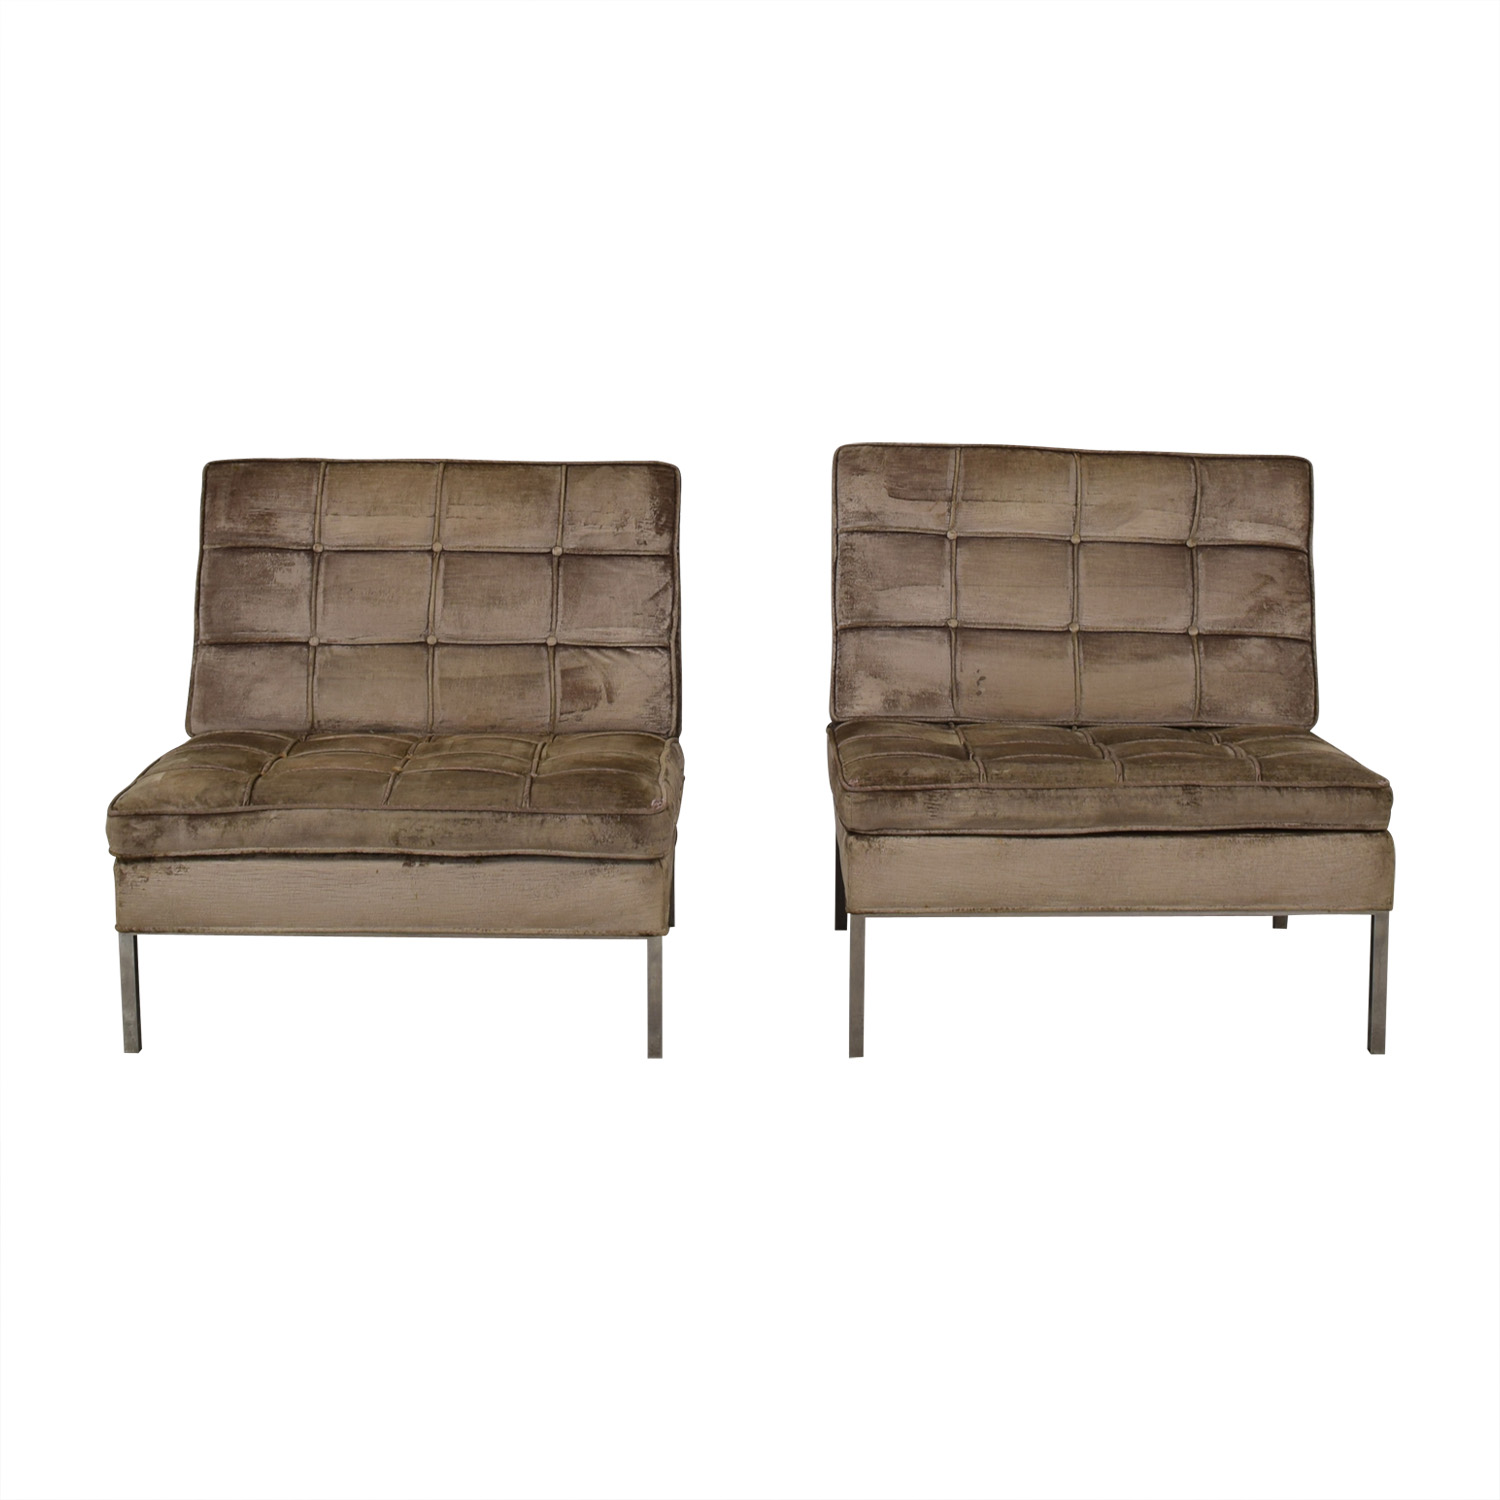 Knoll Knoll Beige Tufted Velvet Accent Chairs second hand